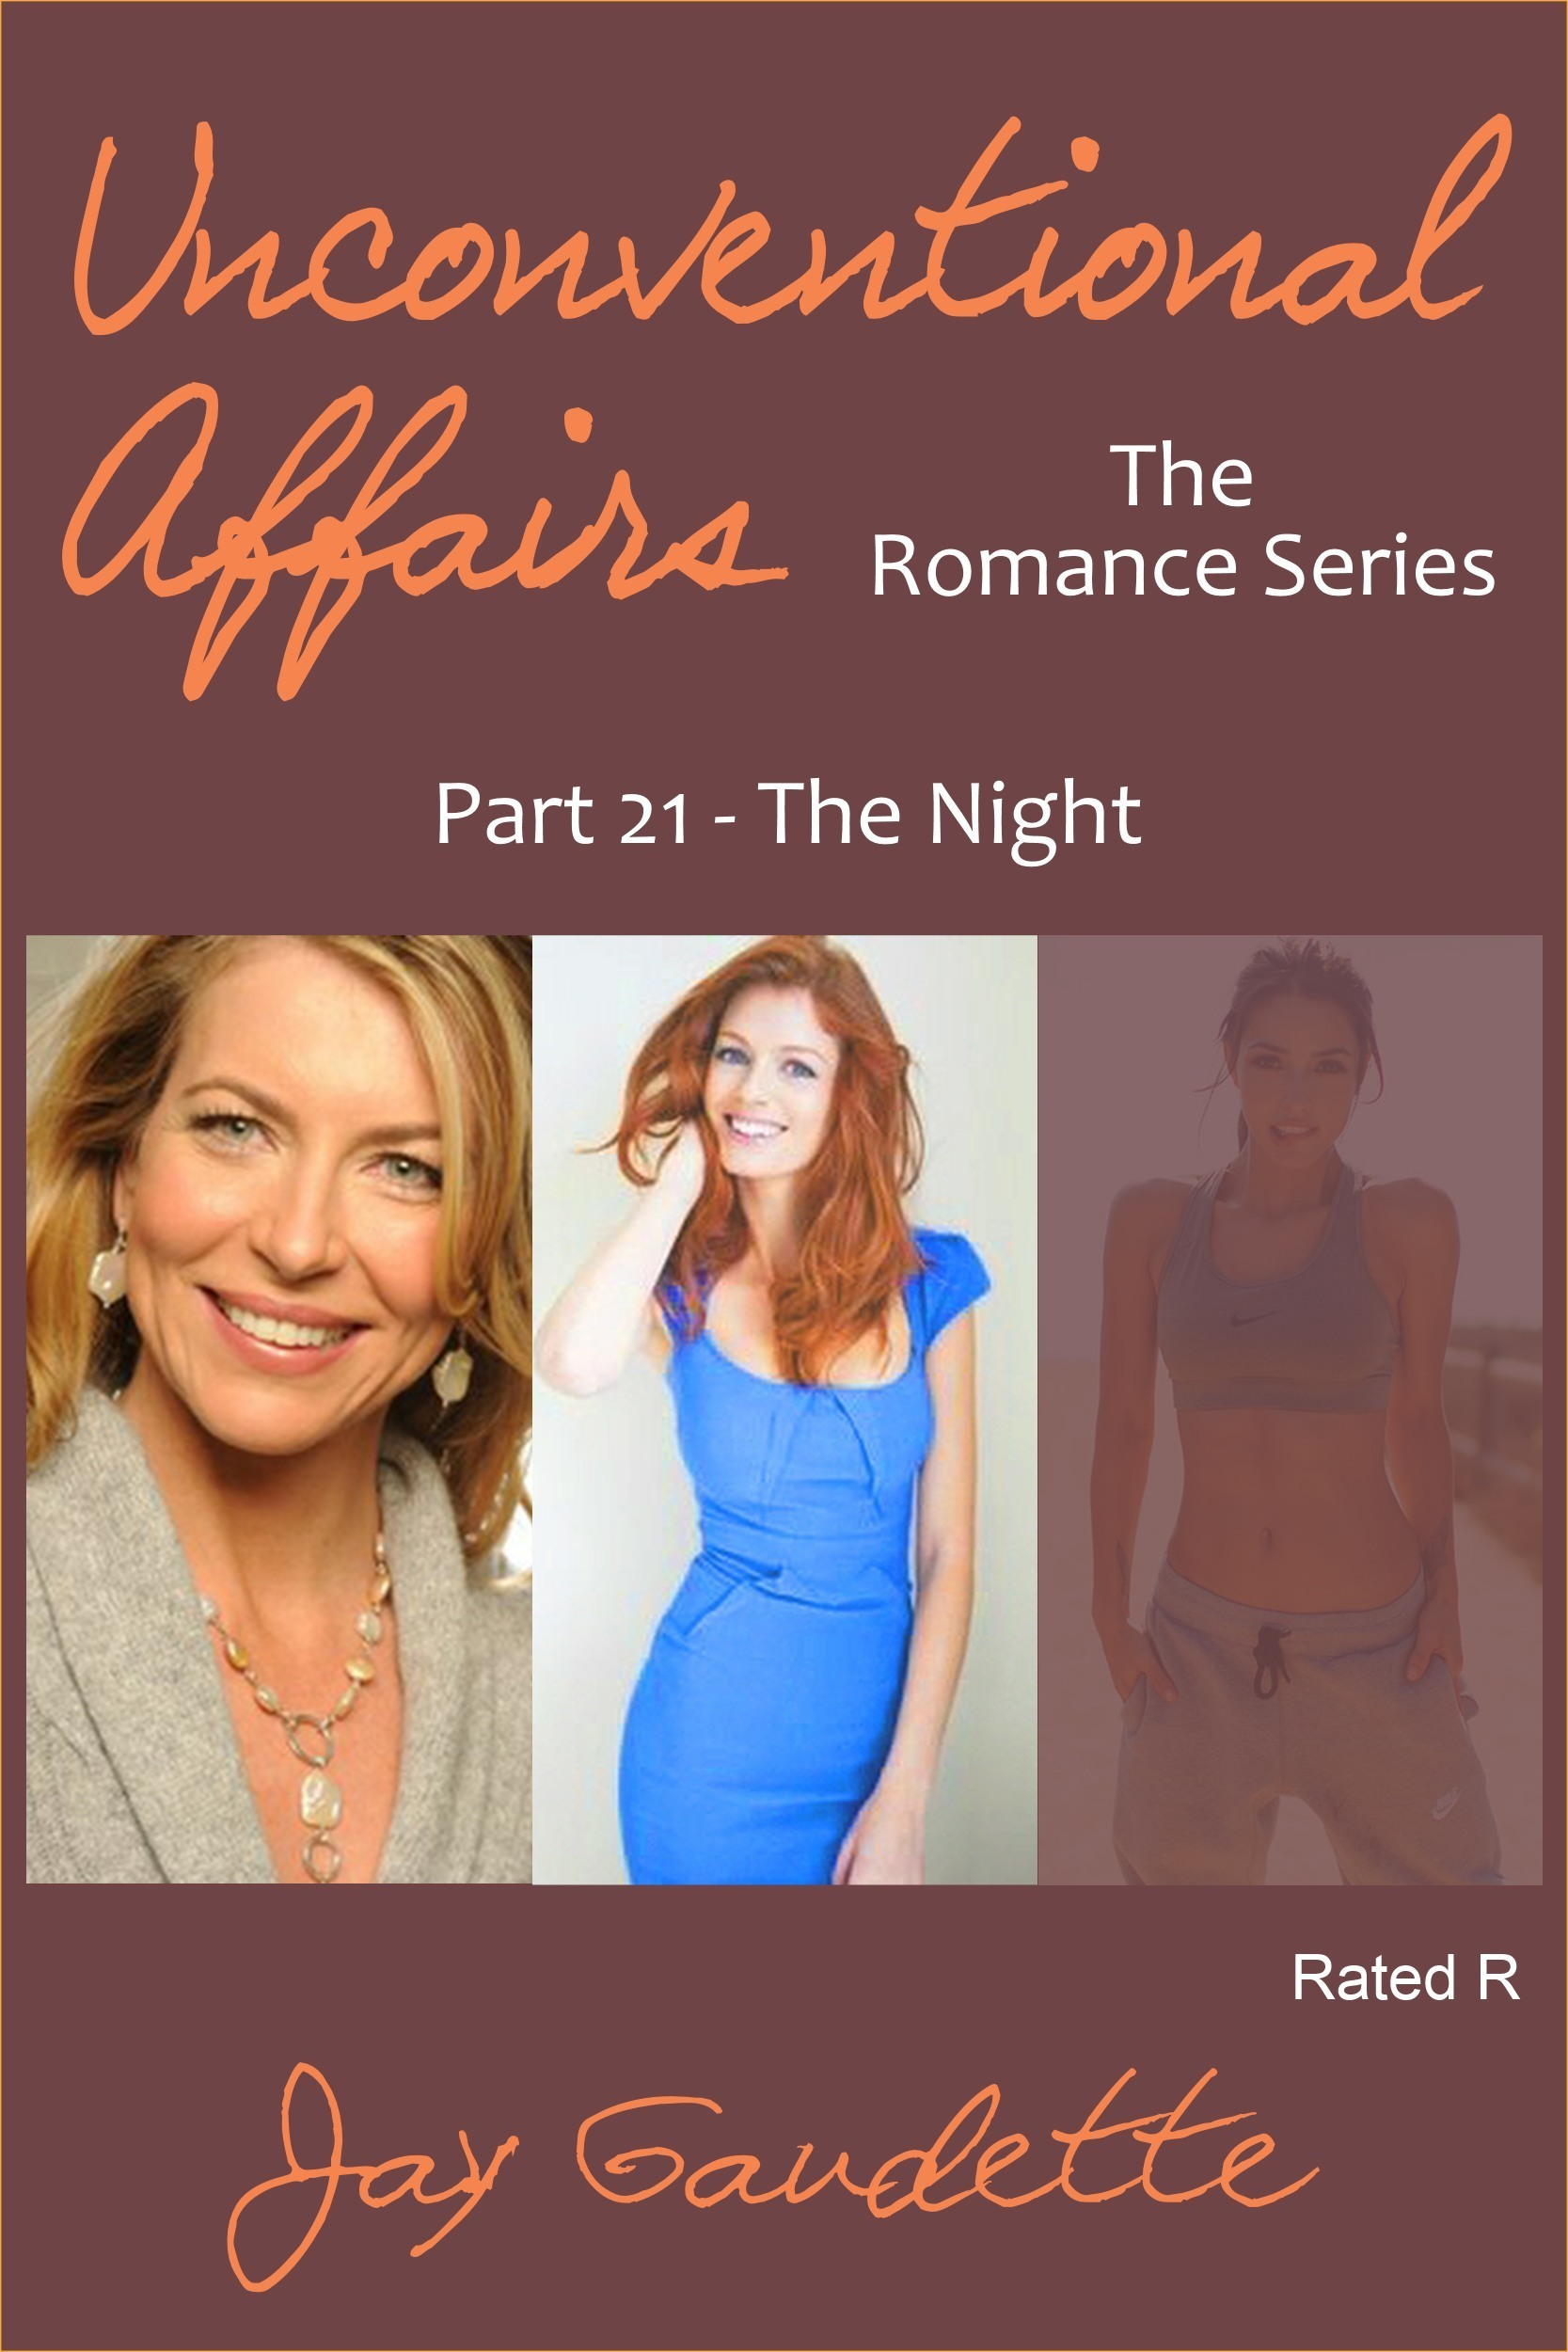 The Night: Part 21 of the Unconventional Affairs Romance Series  by  Jay Gaudette